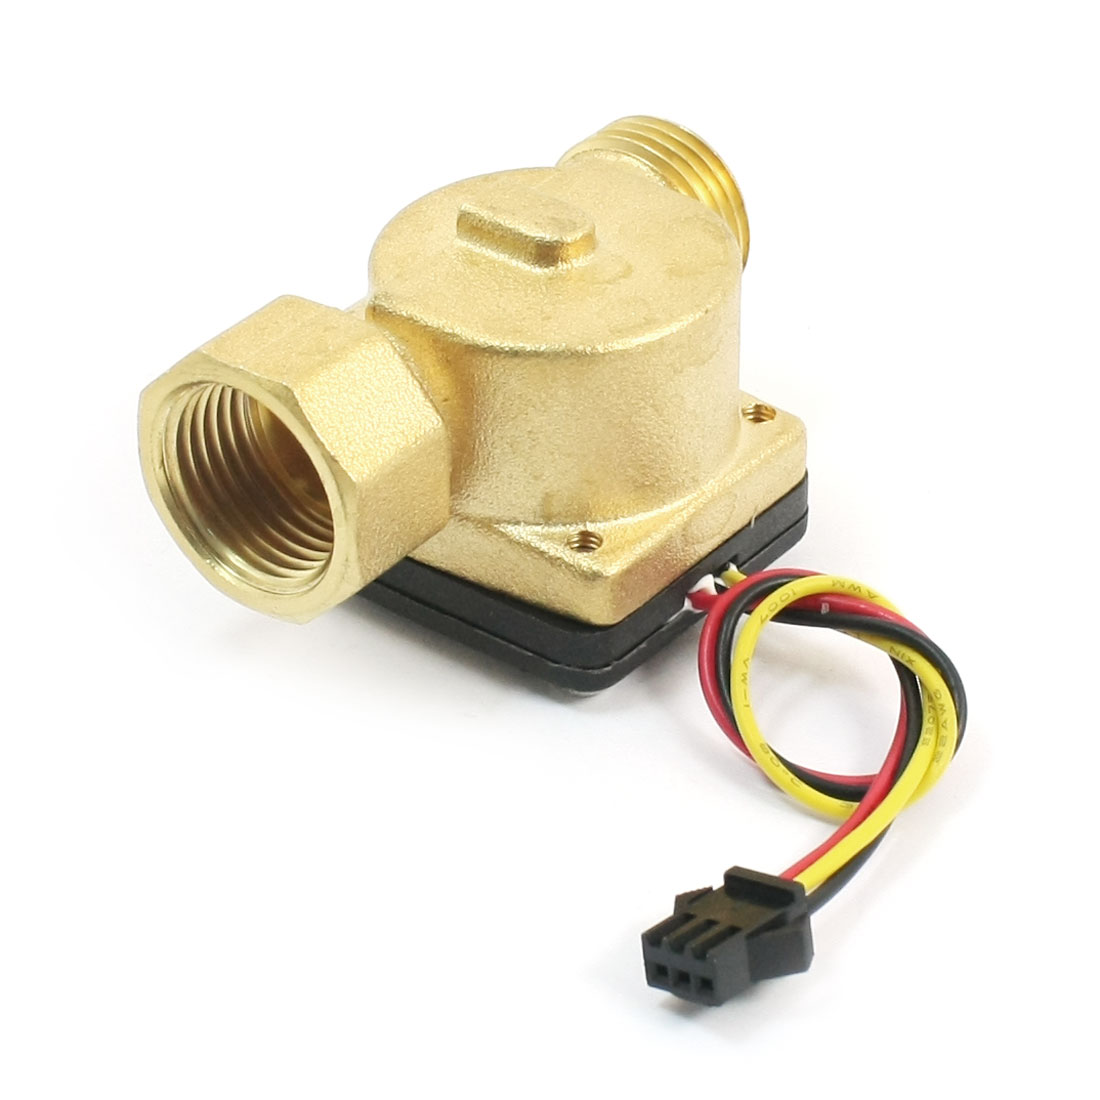 SEN-HZ21FA G1/2 Threaded Port 1-30L/min Water Flow Hall Effect Sensor Switch Flowmeter